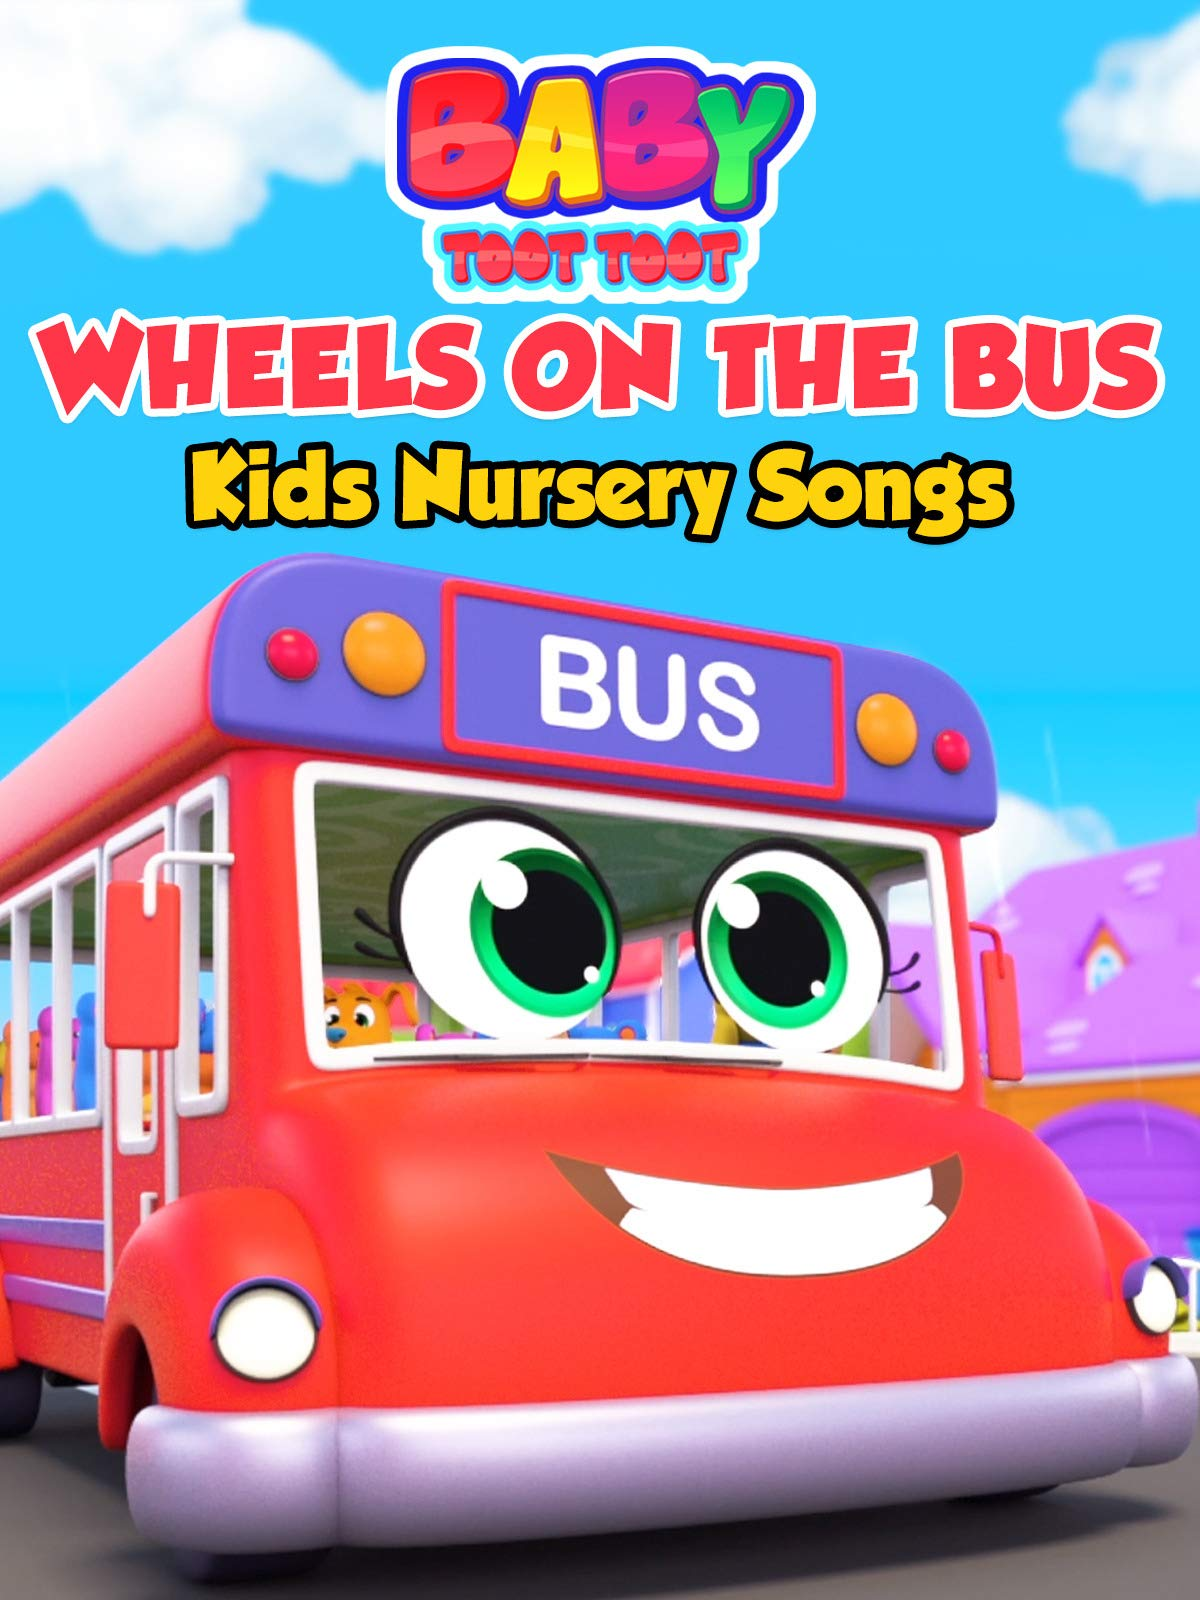 Wheels on the Bus Kids Nursery Songs - Baby Toot Toot on Amazon Prime Video UK